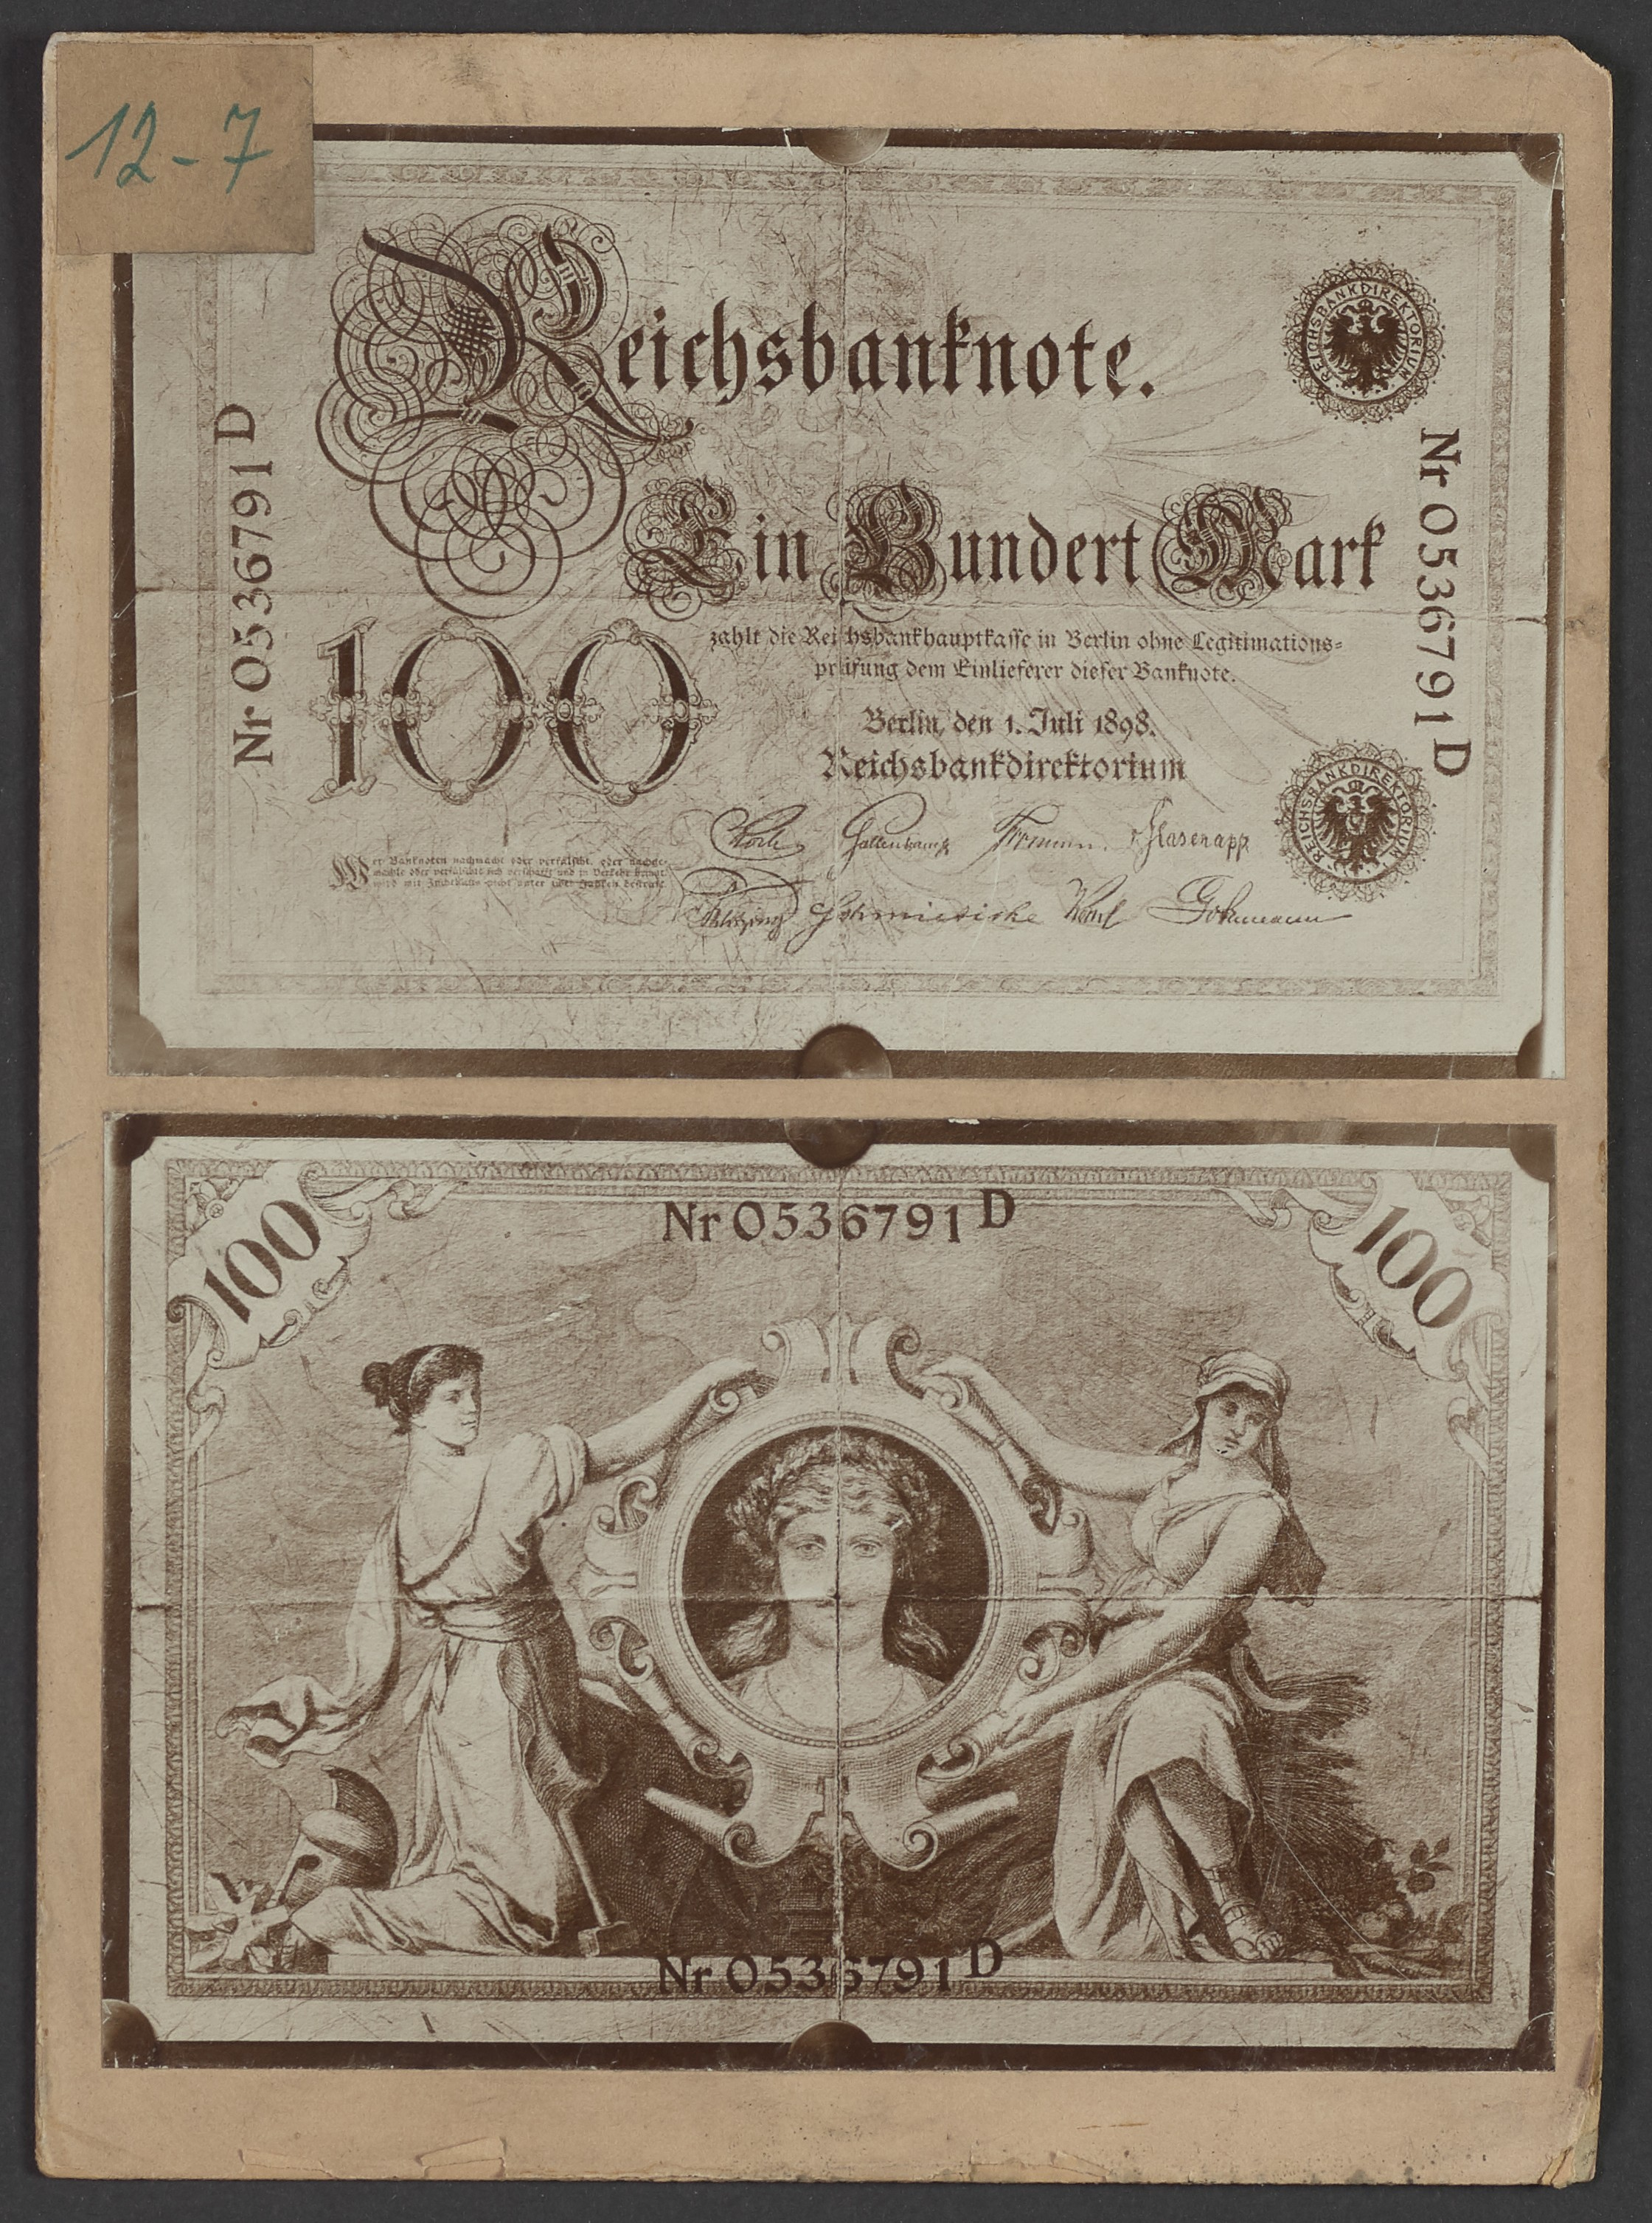 """Reichsbanknote 100 Mark von 1898"" (Polizeidirektion Dresden RR-F)"